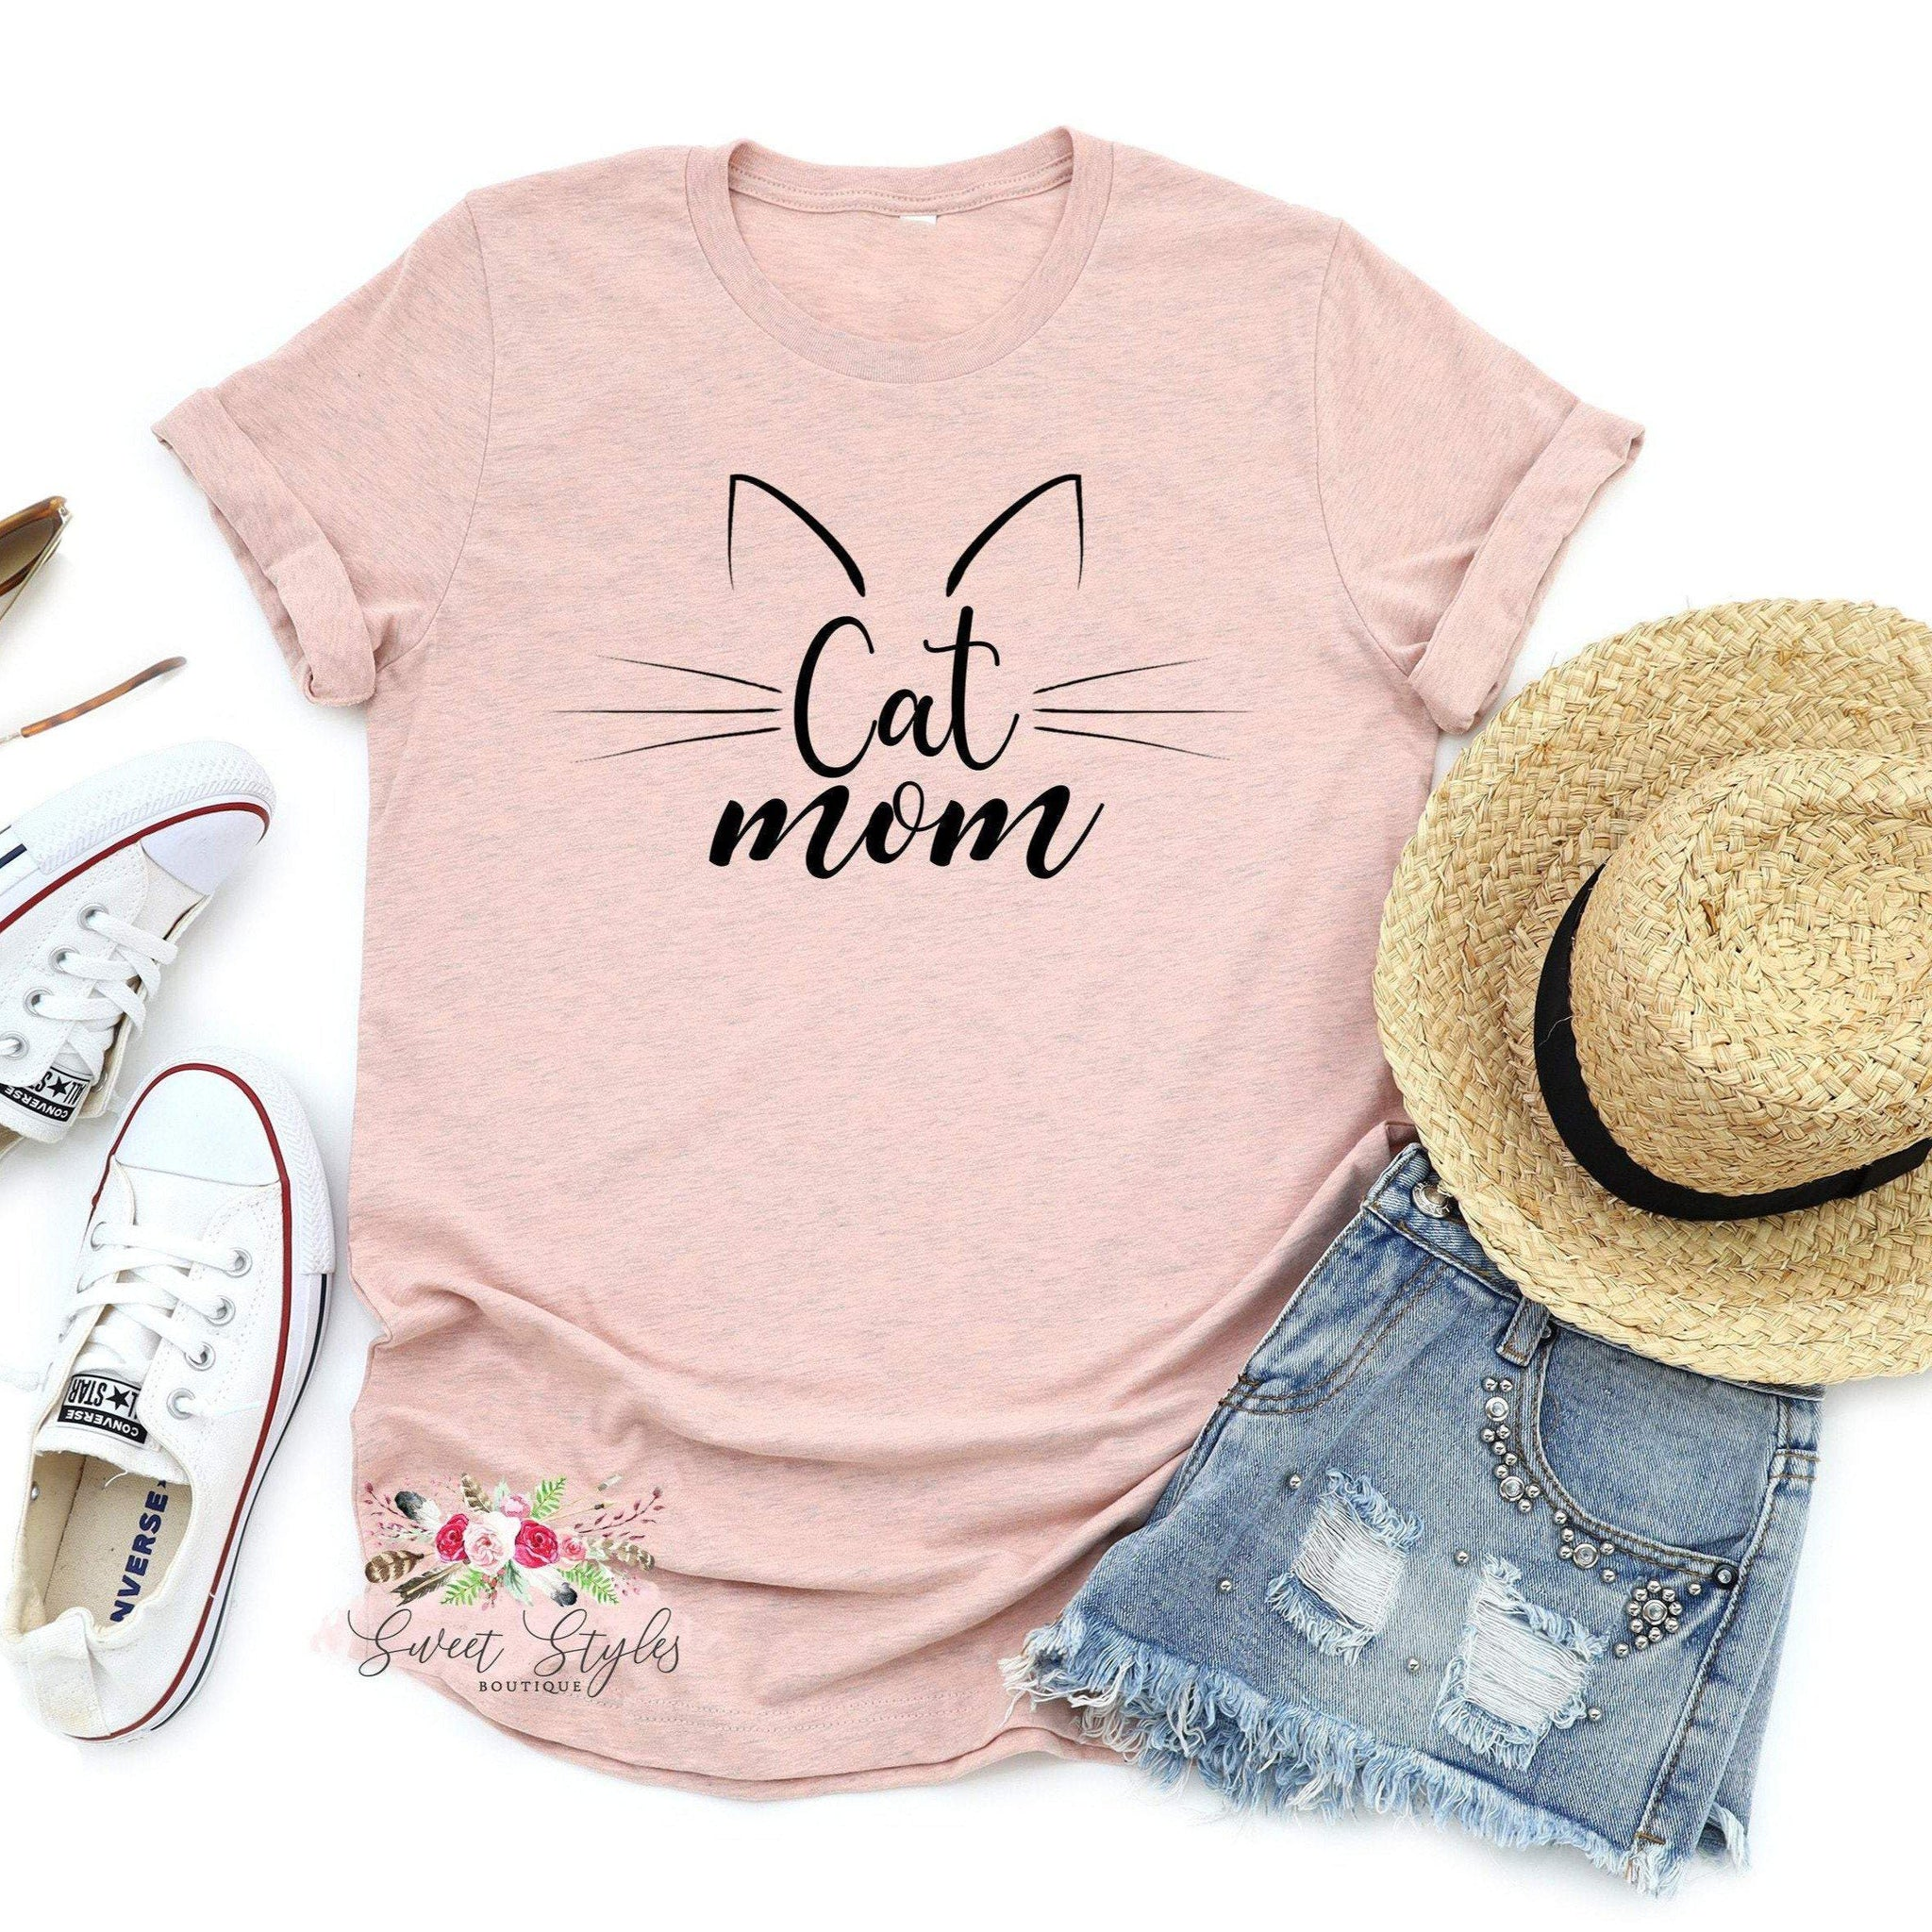 Cat Mom T-Shirt-Sweet Styles boutique